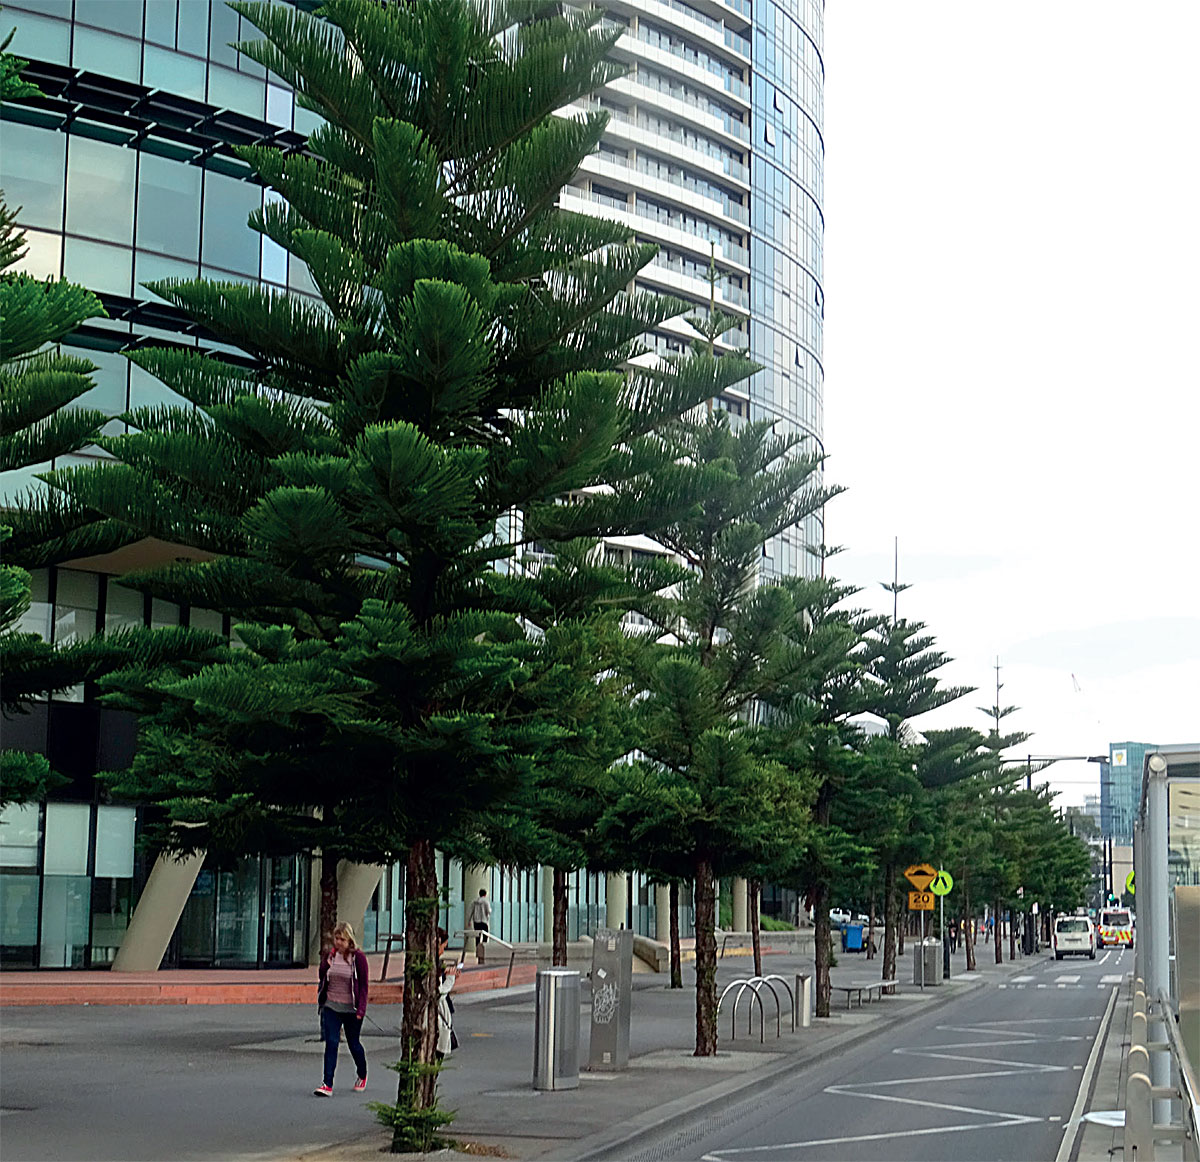 An avenue planting of Norfolk Island pine in the docklands area of Melbourne, one of the least tree covered areas of the city